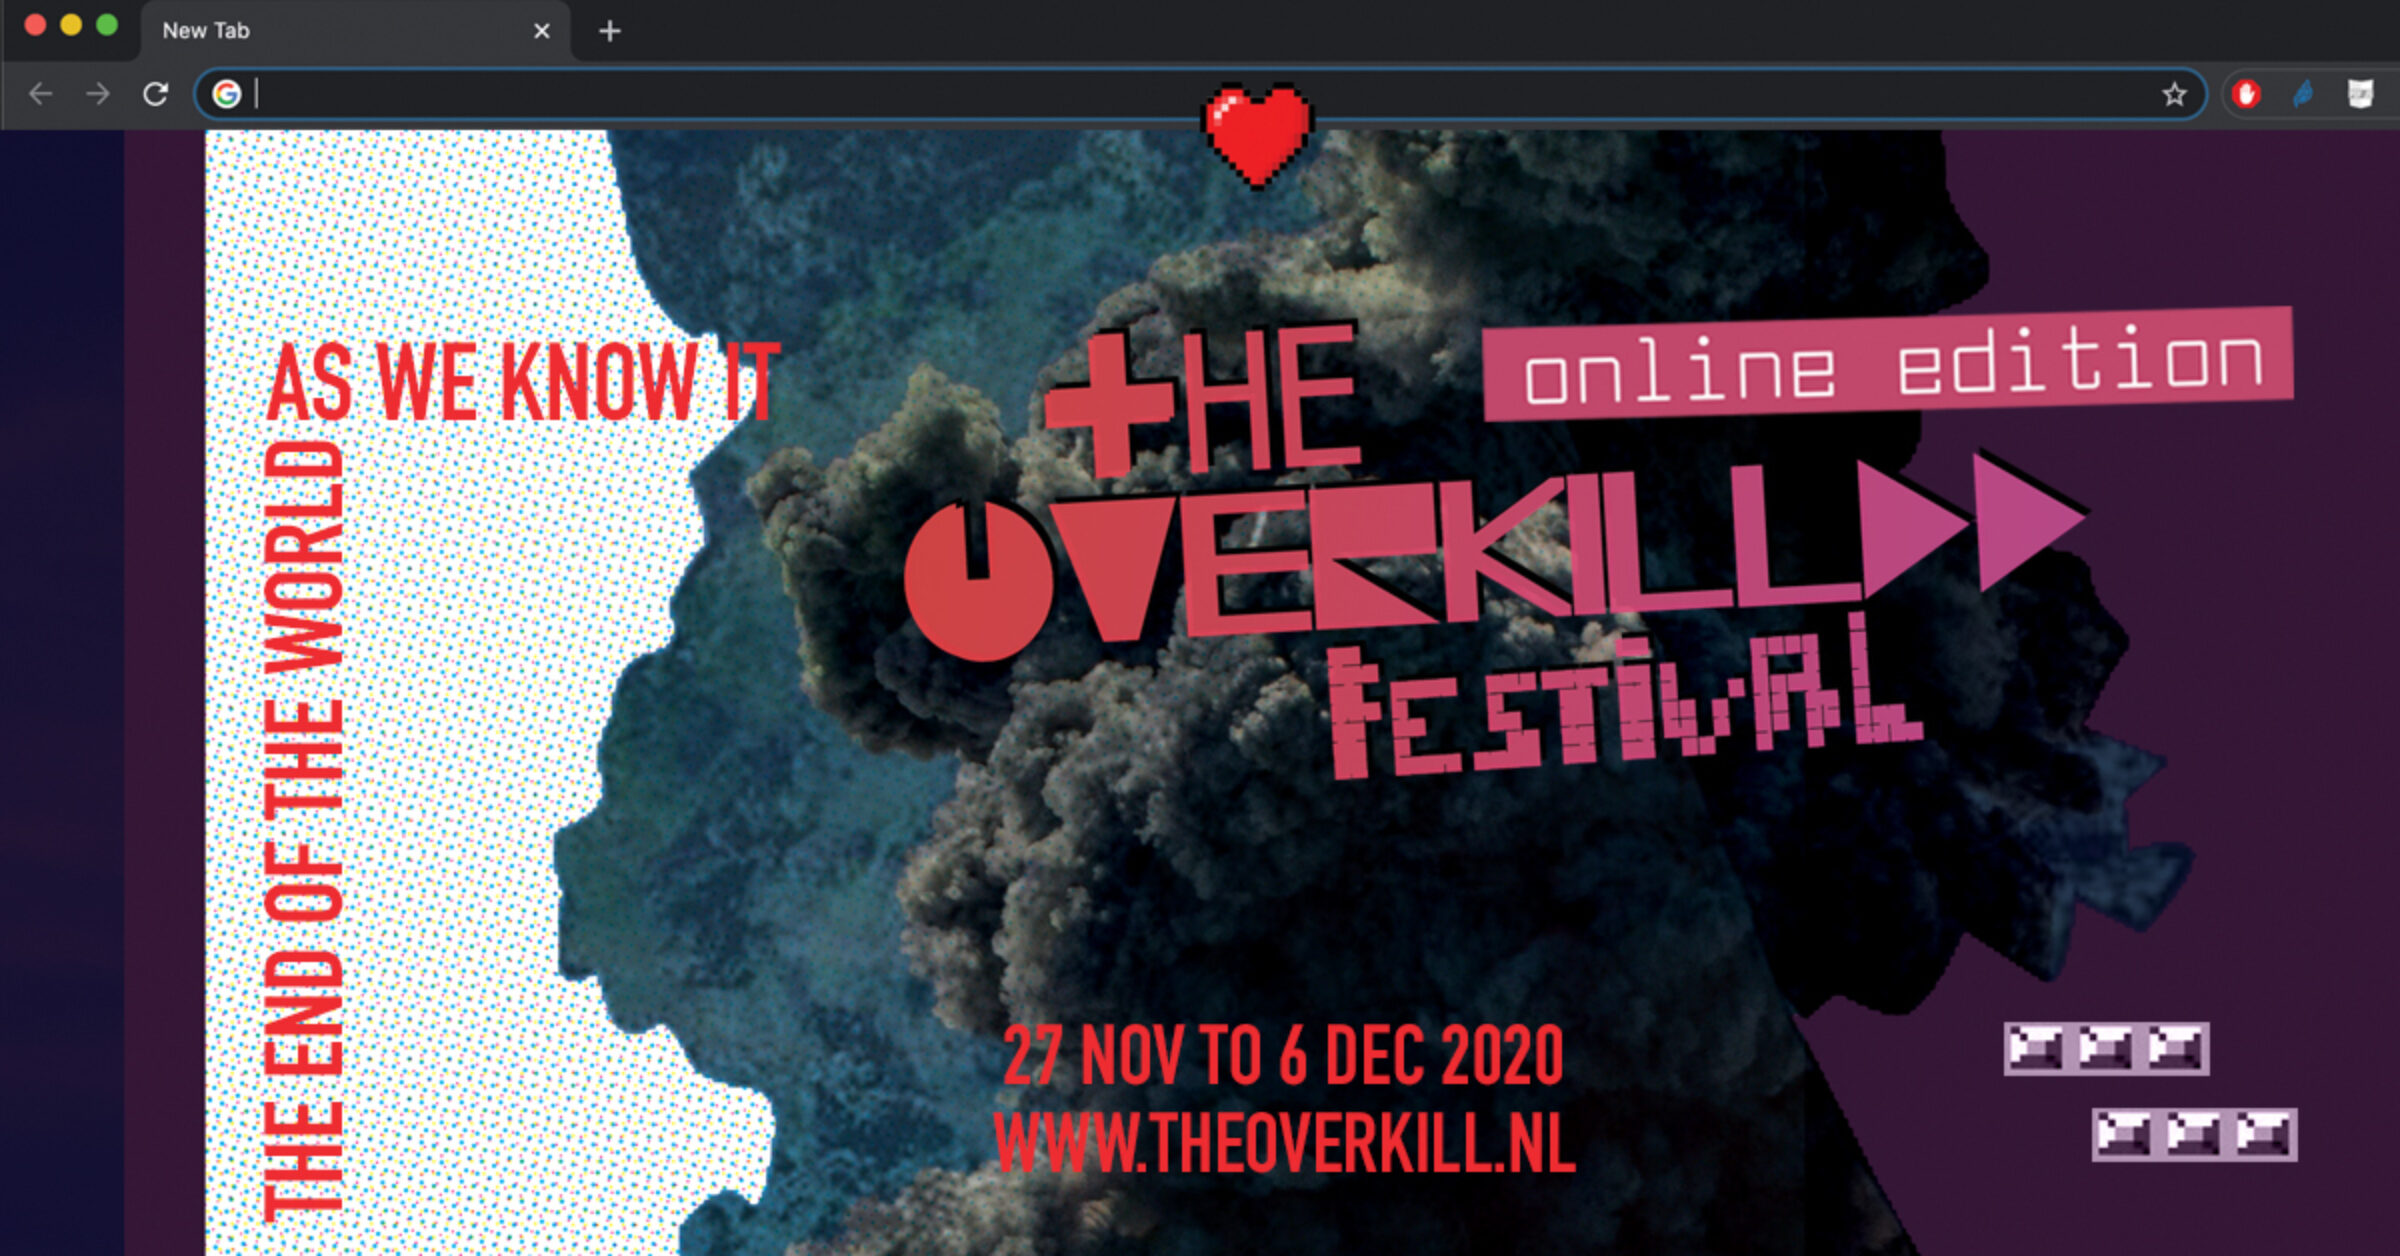 The Overkill Festival in Enschede